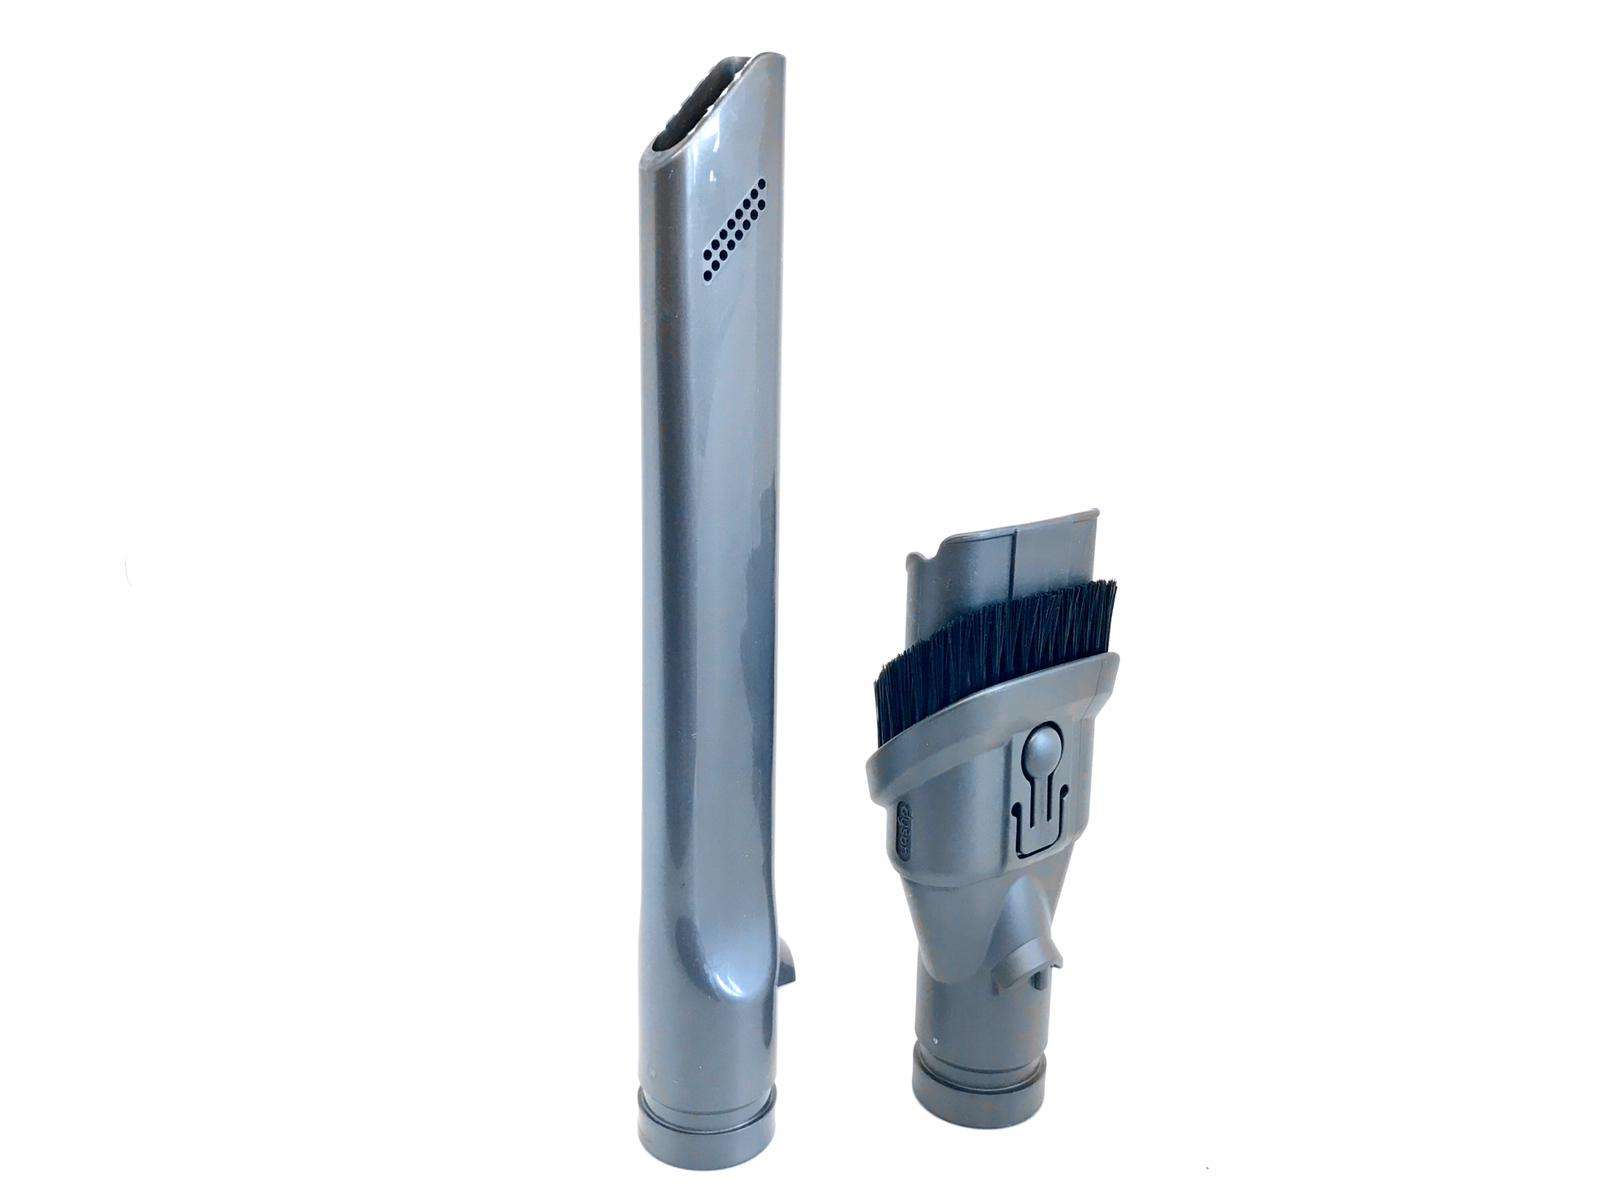 Nozzle Cleaners and Crevice Tool Dyson V6 Animal